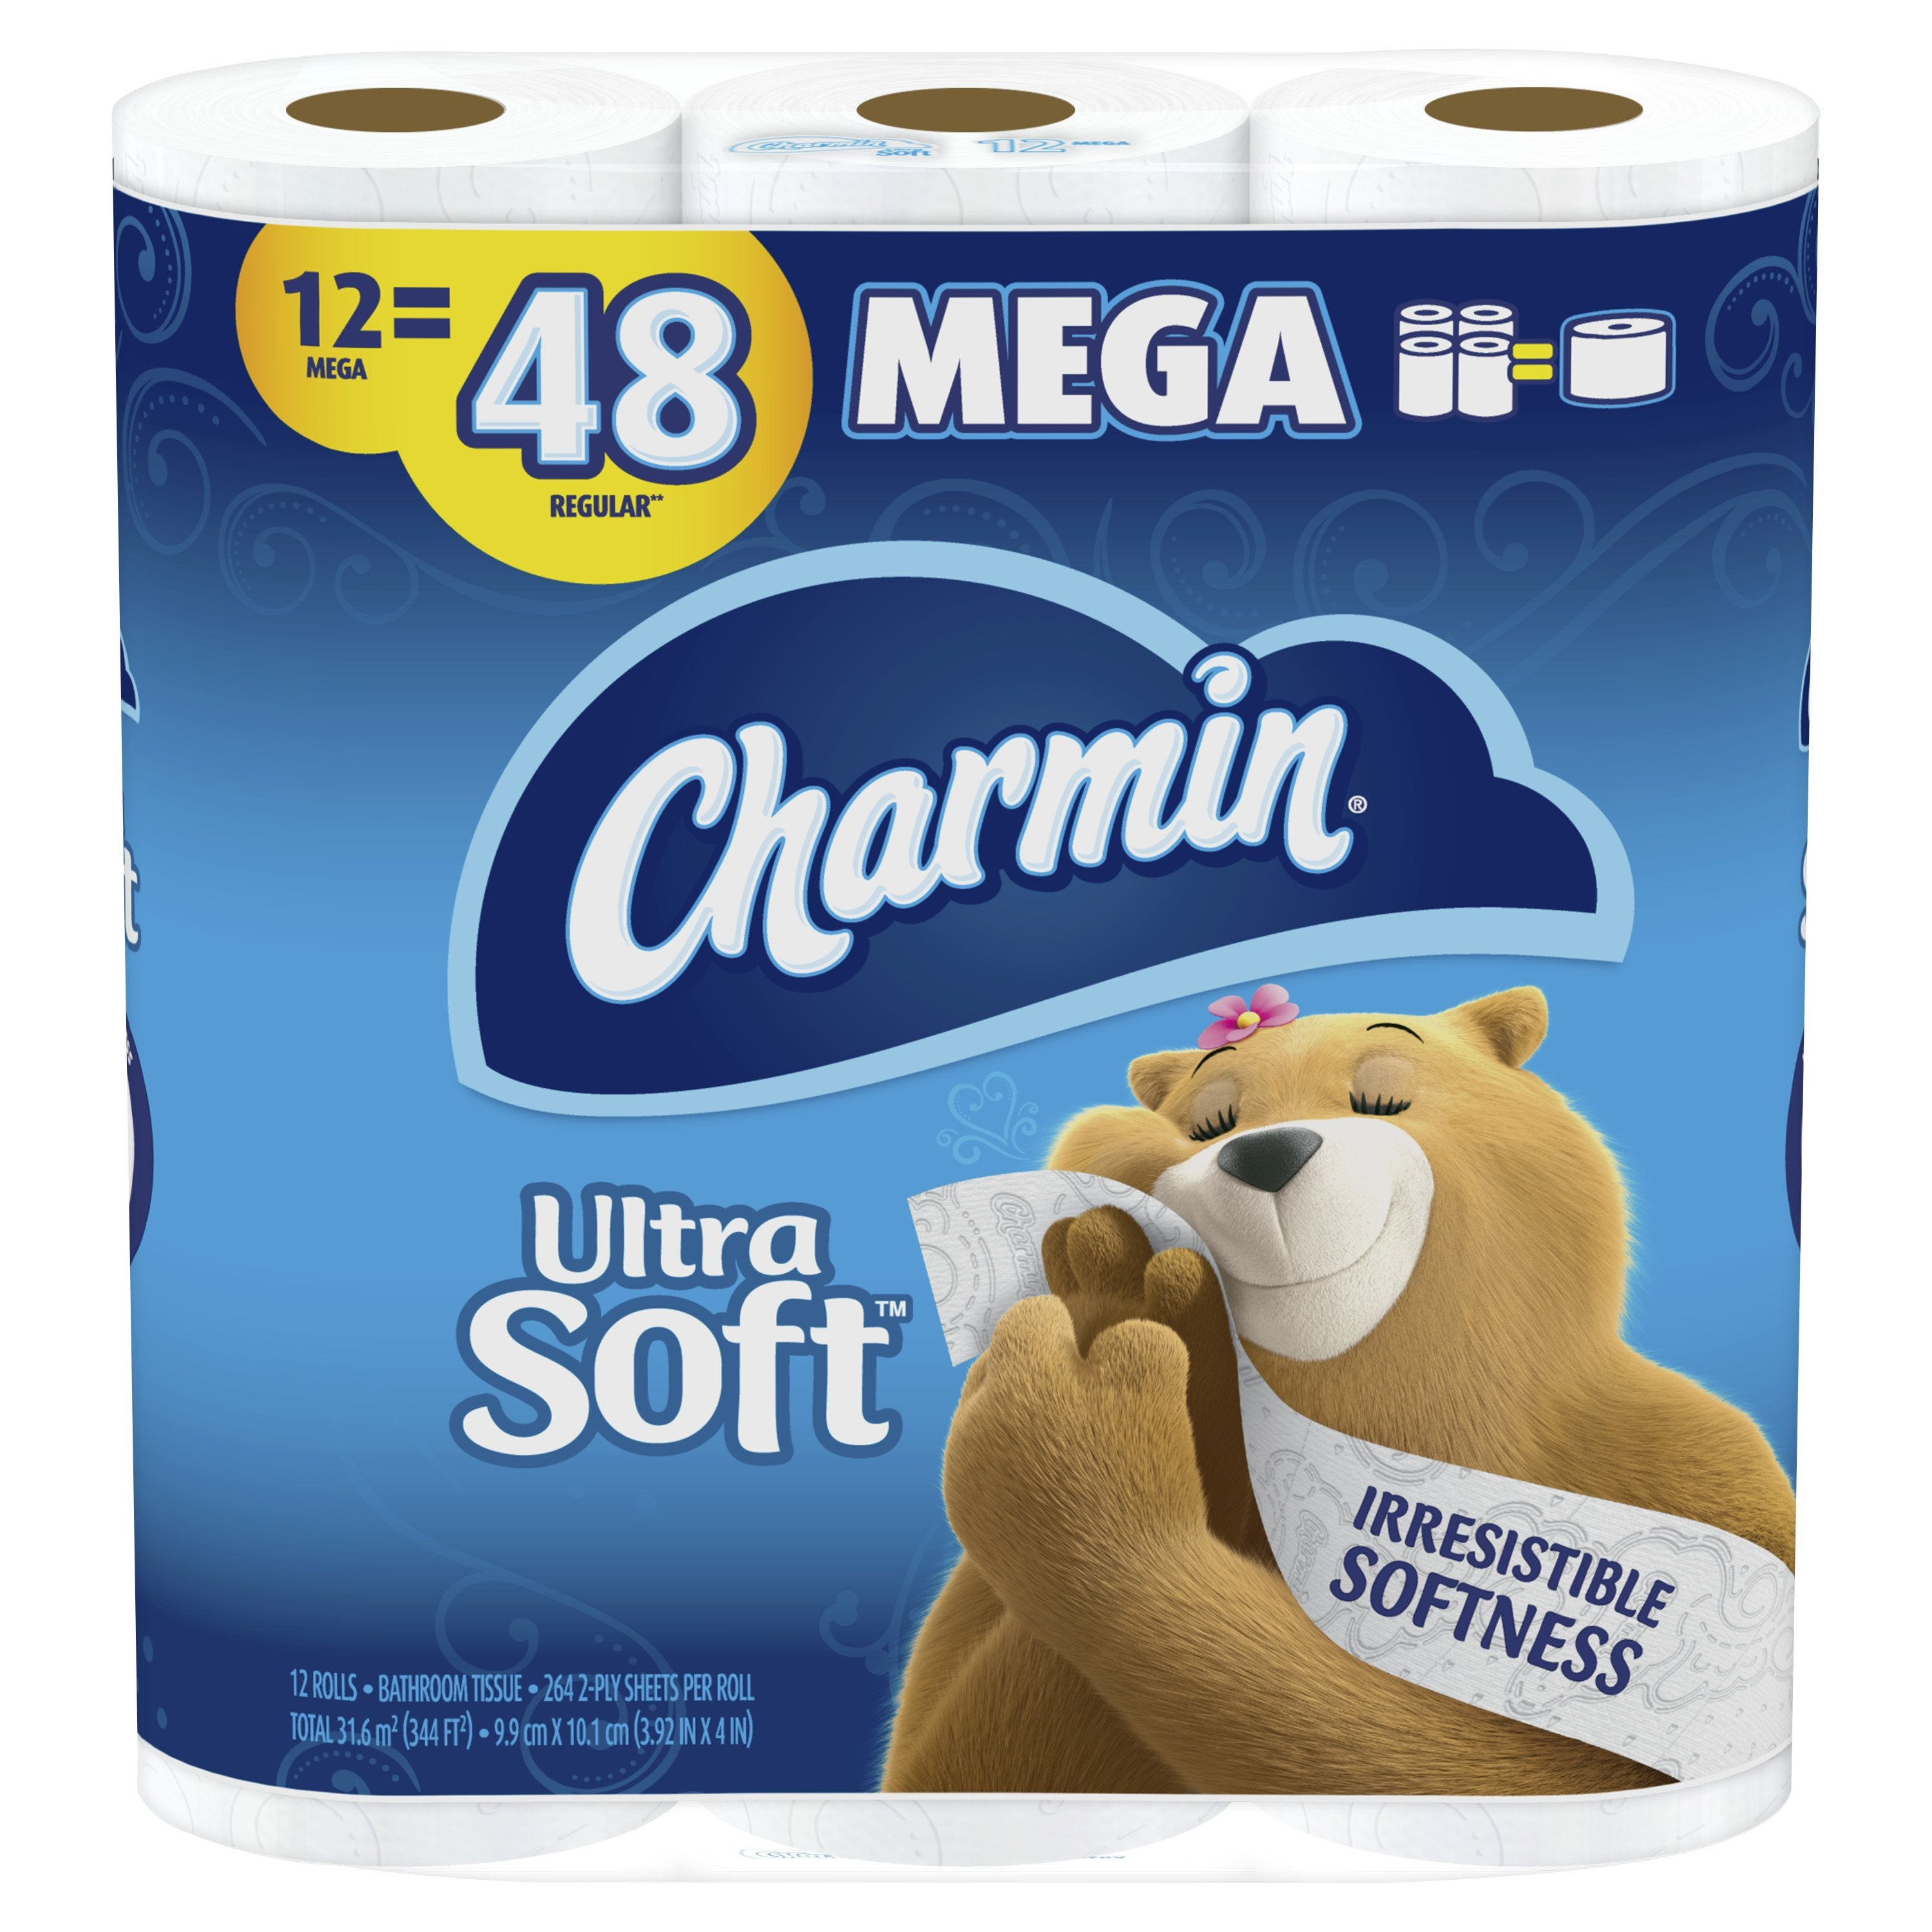 Charmin Ultra Soft Bathroom Tissue, Septic Safe, 2-Ply, White, 4 X 3.92, 264 Sheets/Roll, 12 Rolls/Pack, 4 Packs/Carton - PGC79546